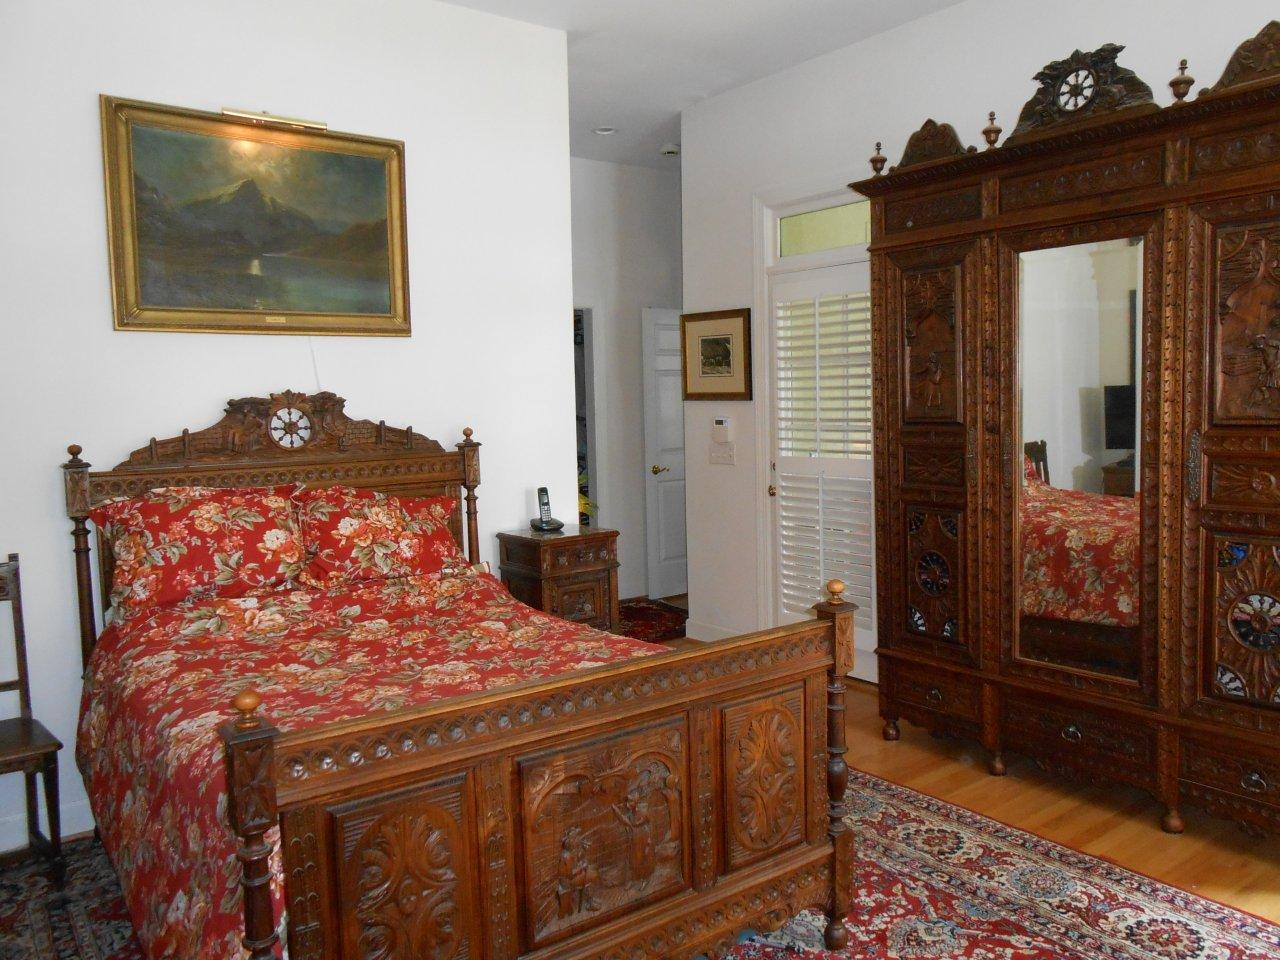 Antique Brittany bedroom suite in our client's home. EuroLuxAntiques.com